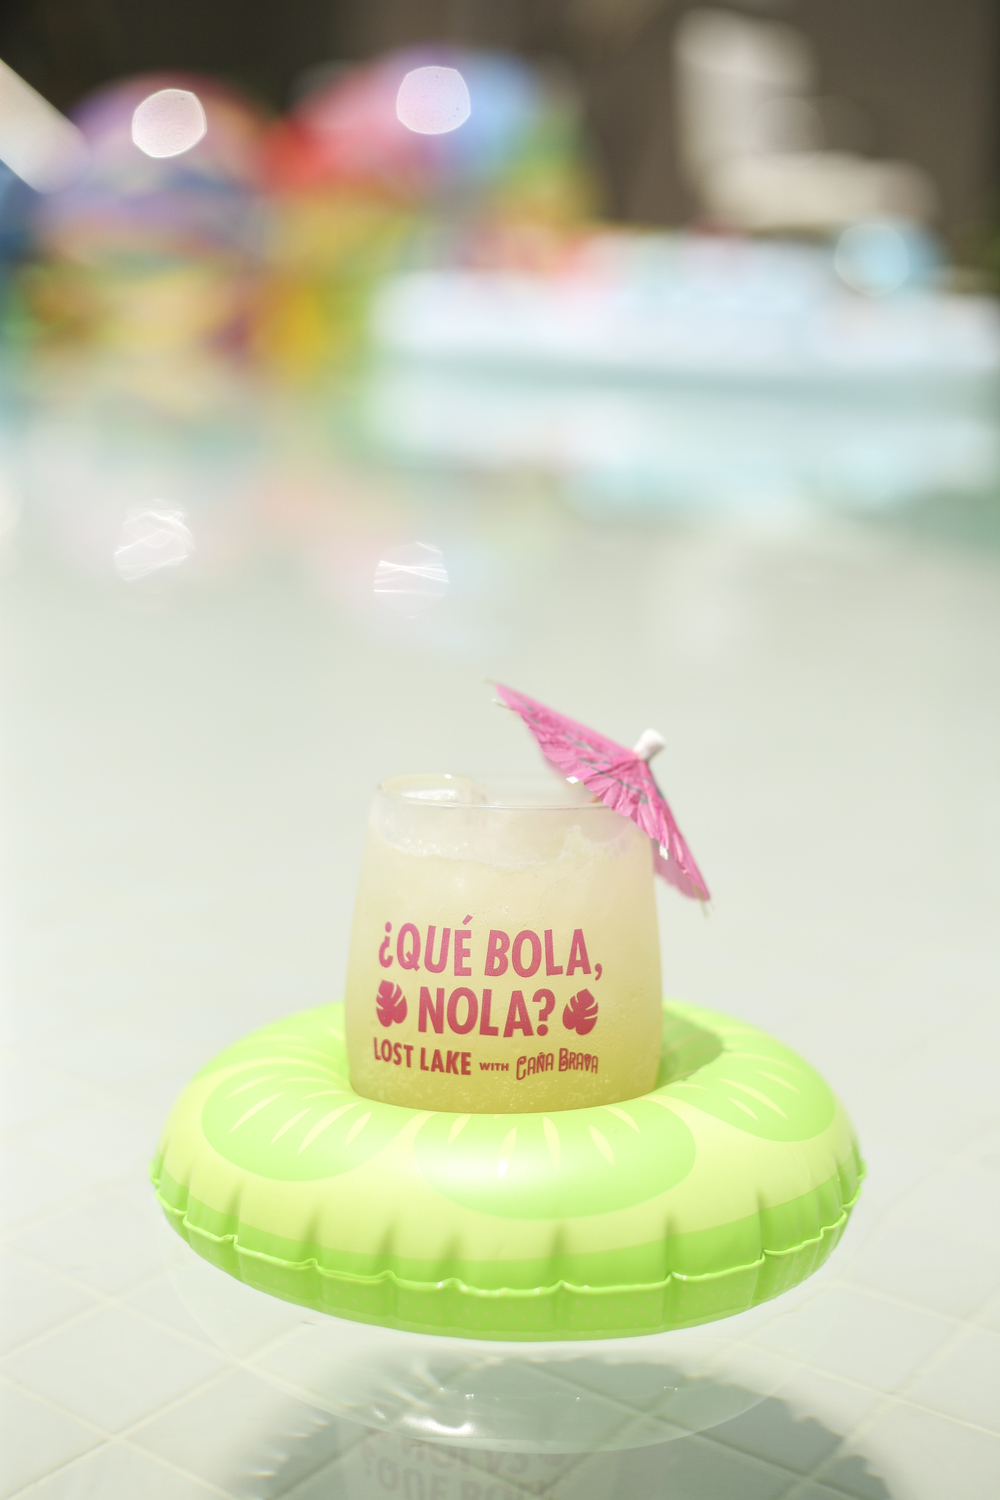 Floating Cana Brava Rum Daiquiri 1 Photo Credit Angelia Melody Photography.jpg